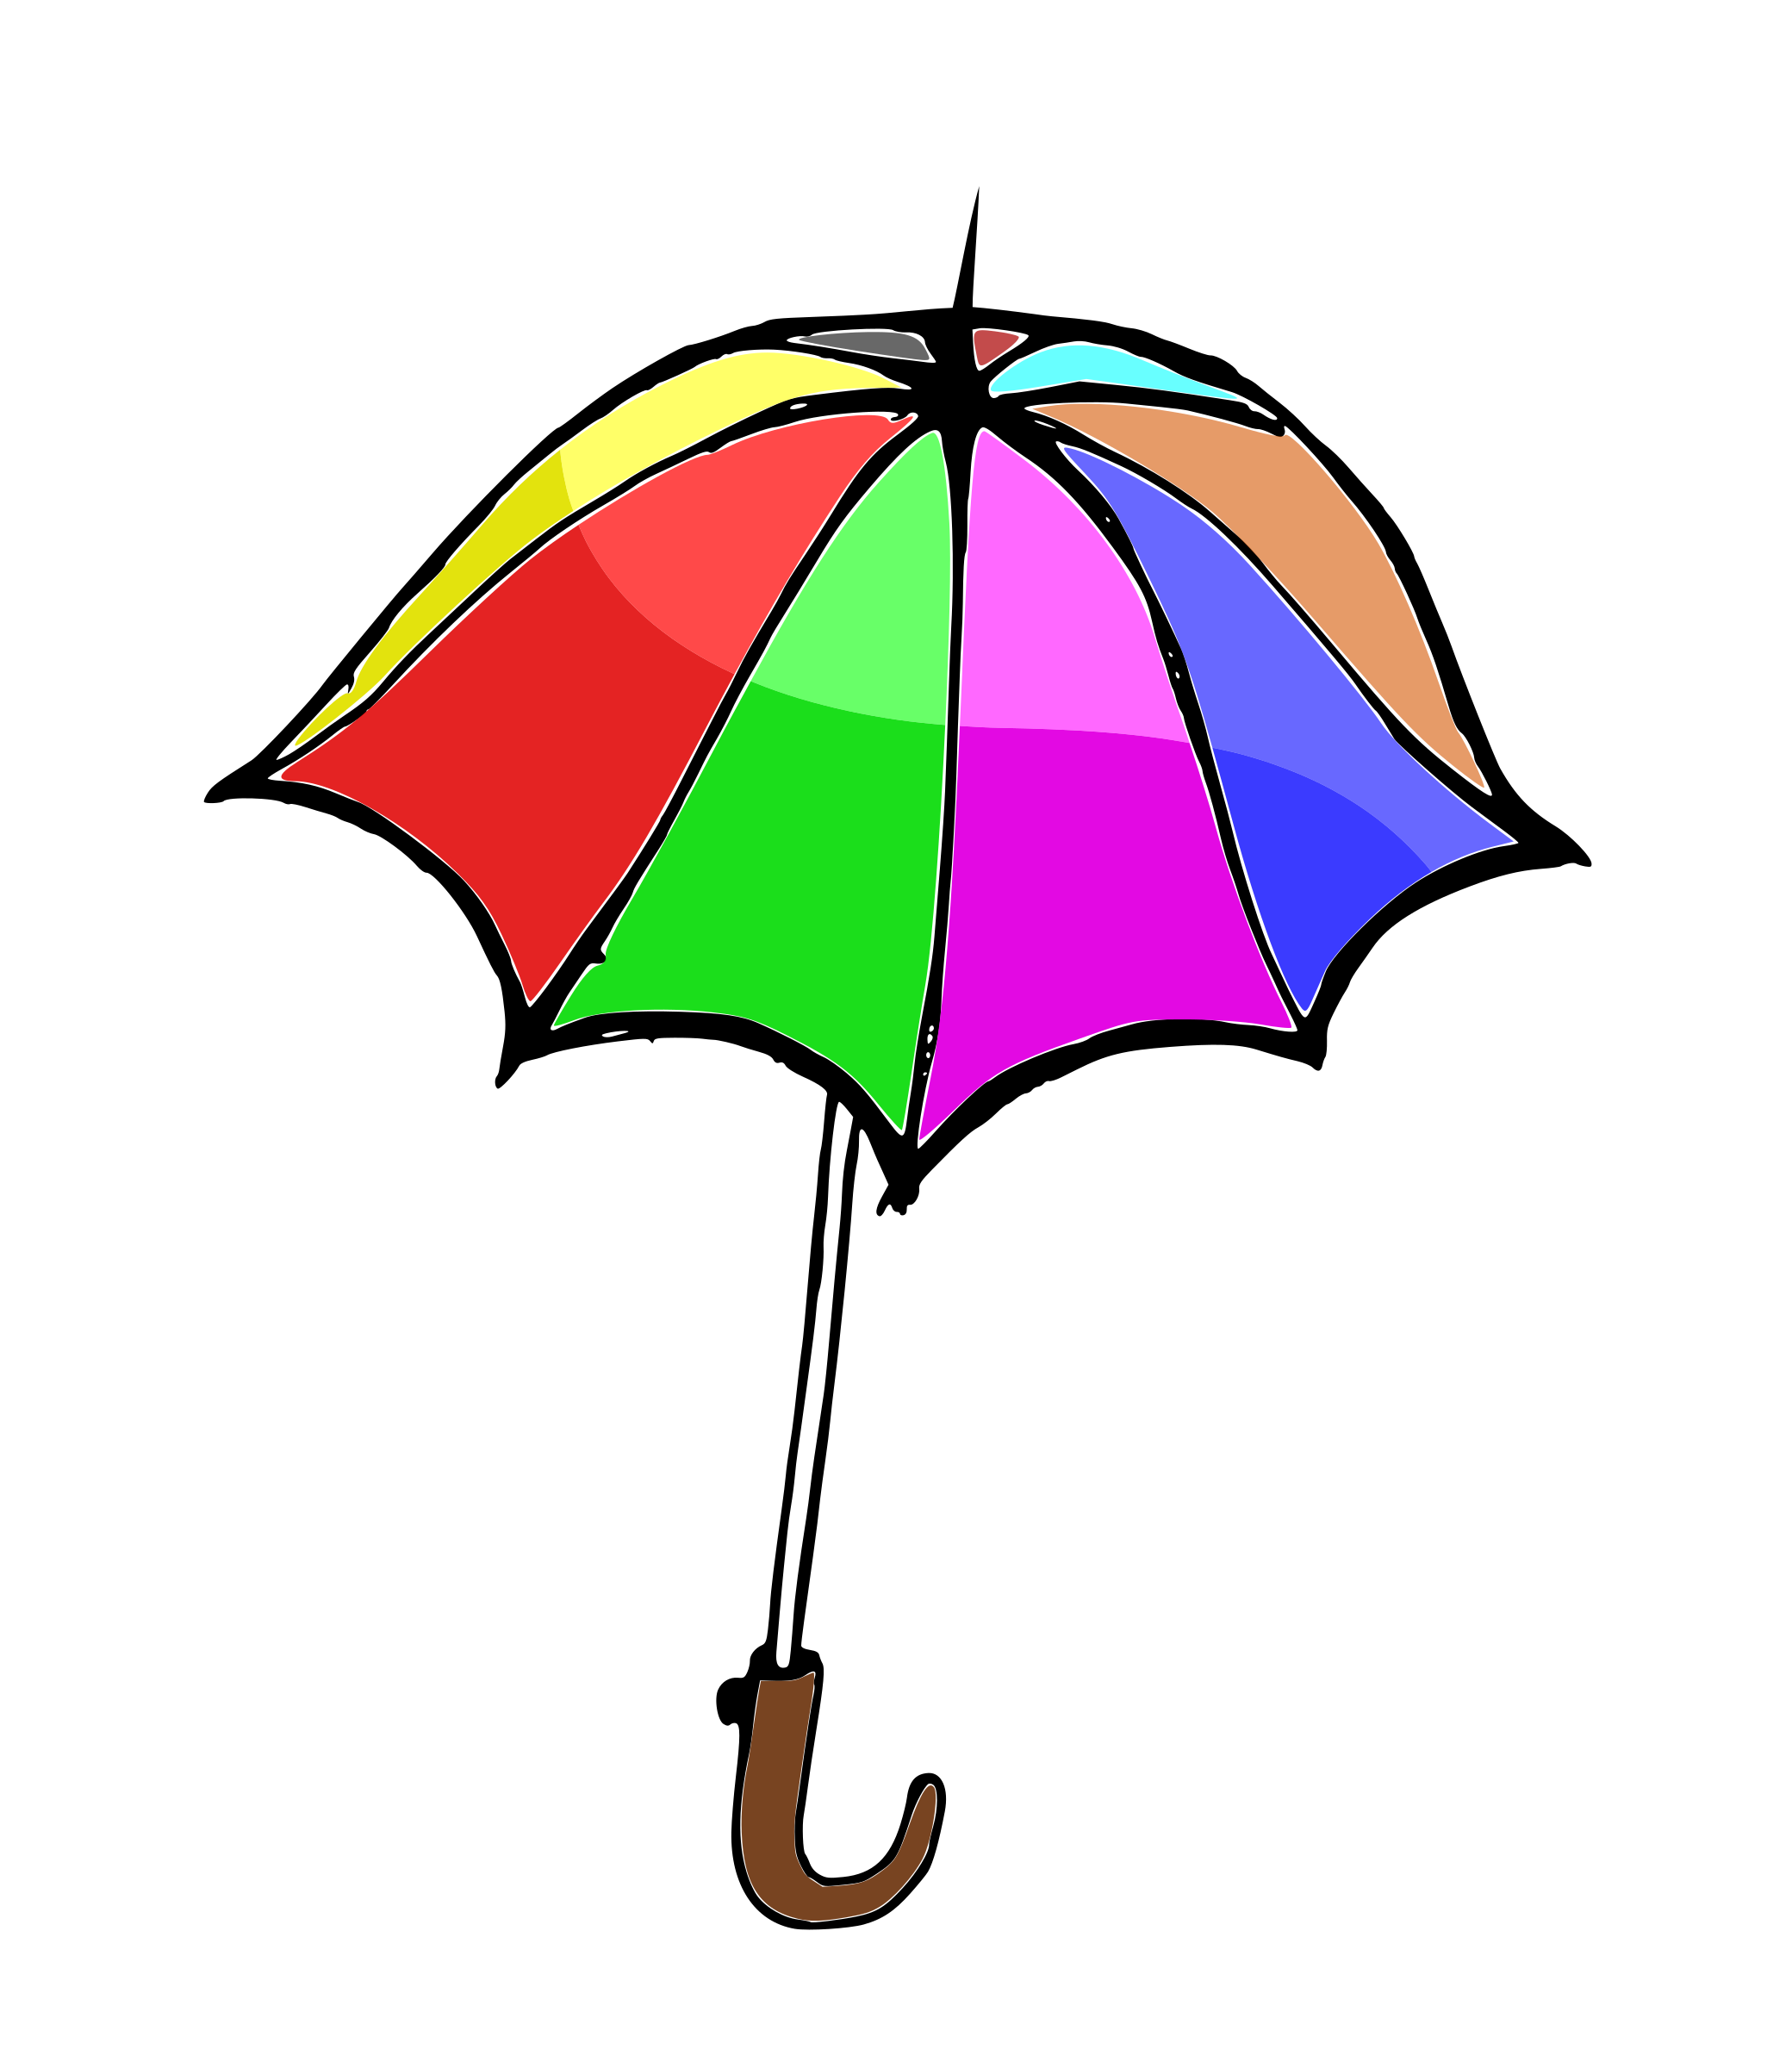 Umbrella01 by 3Dline